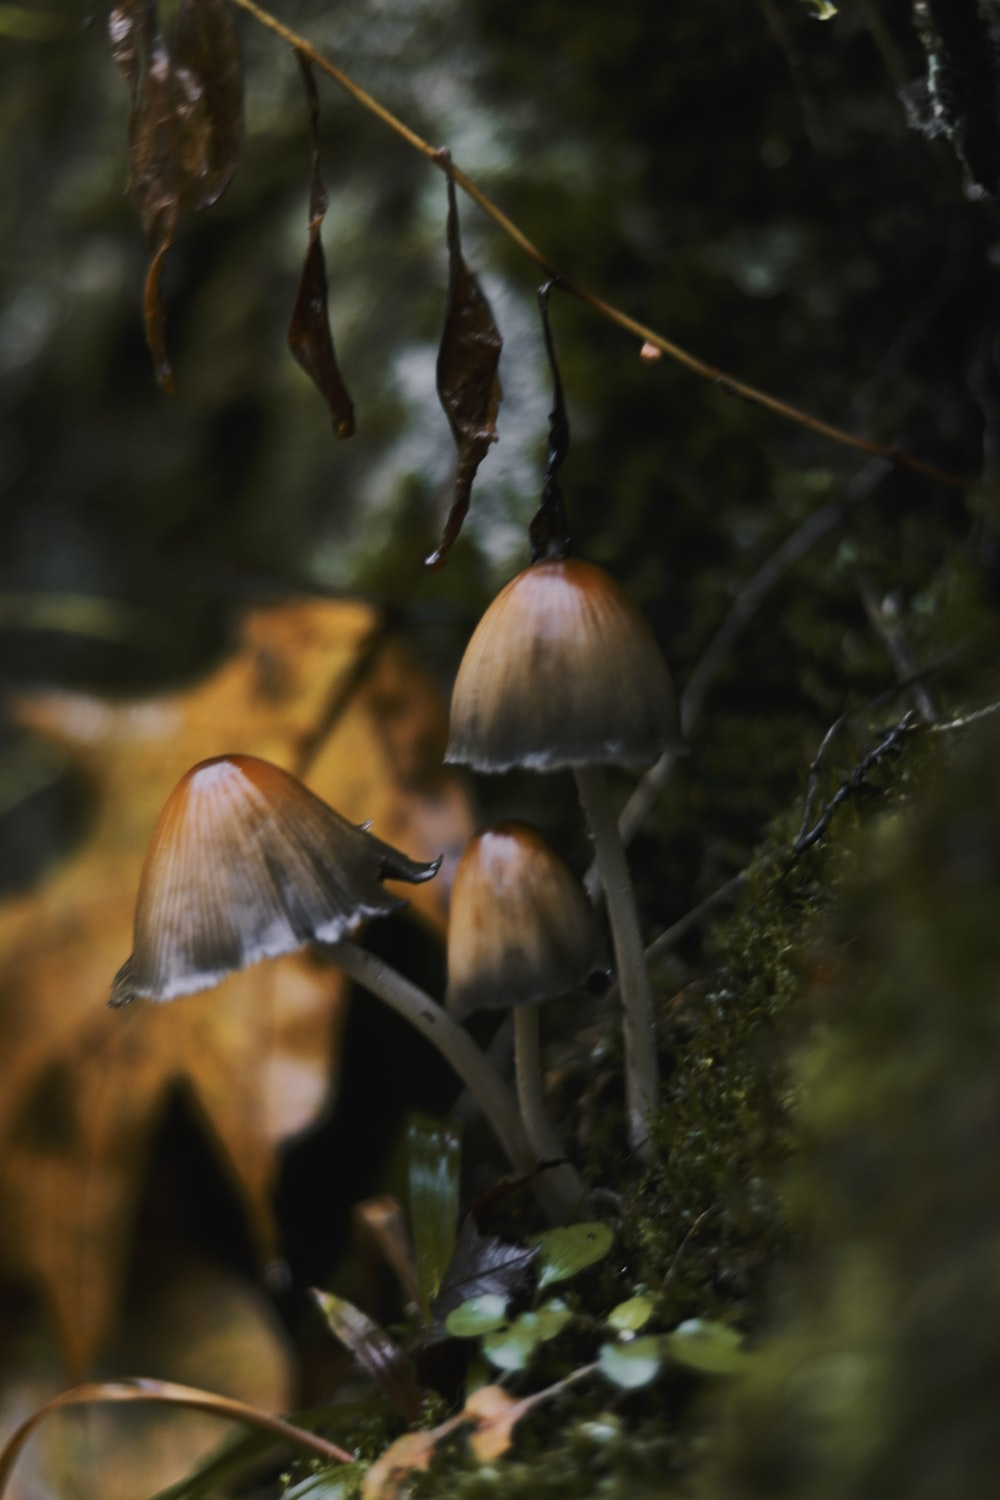 close-up photography of brown mushroom